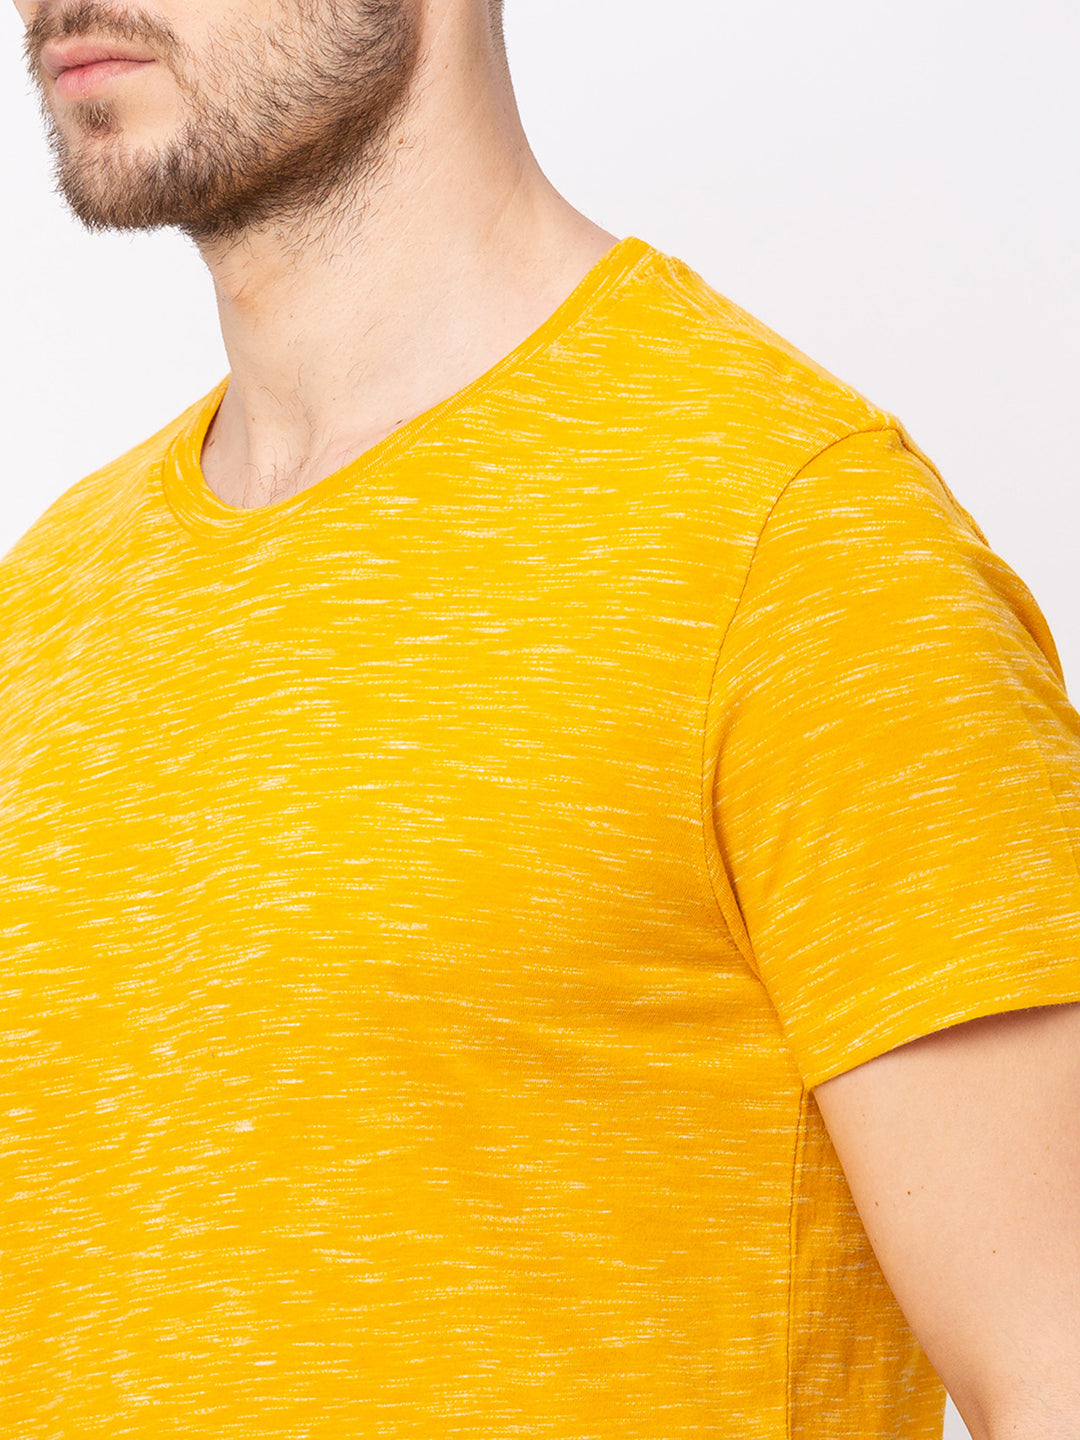 Globus Yellow Solid T-Shirt-4